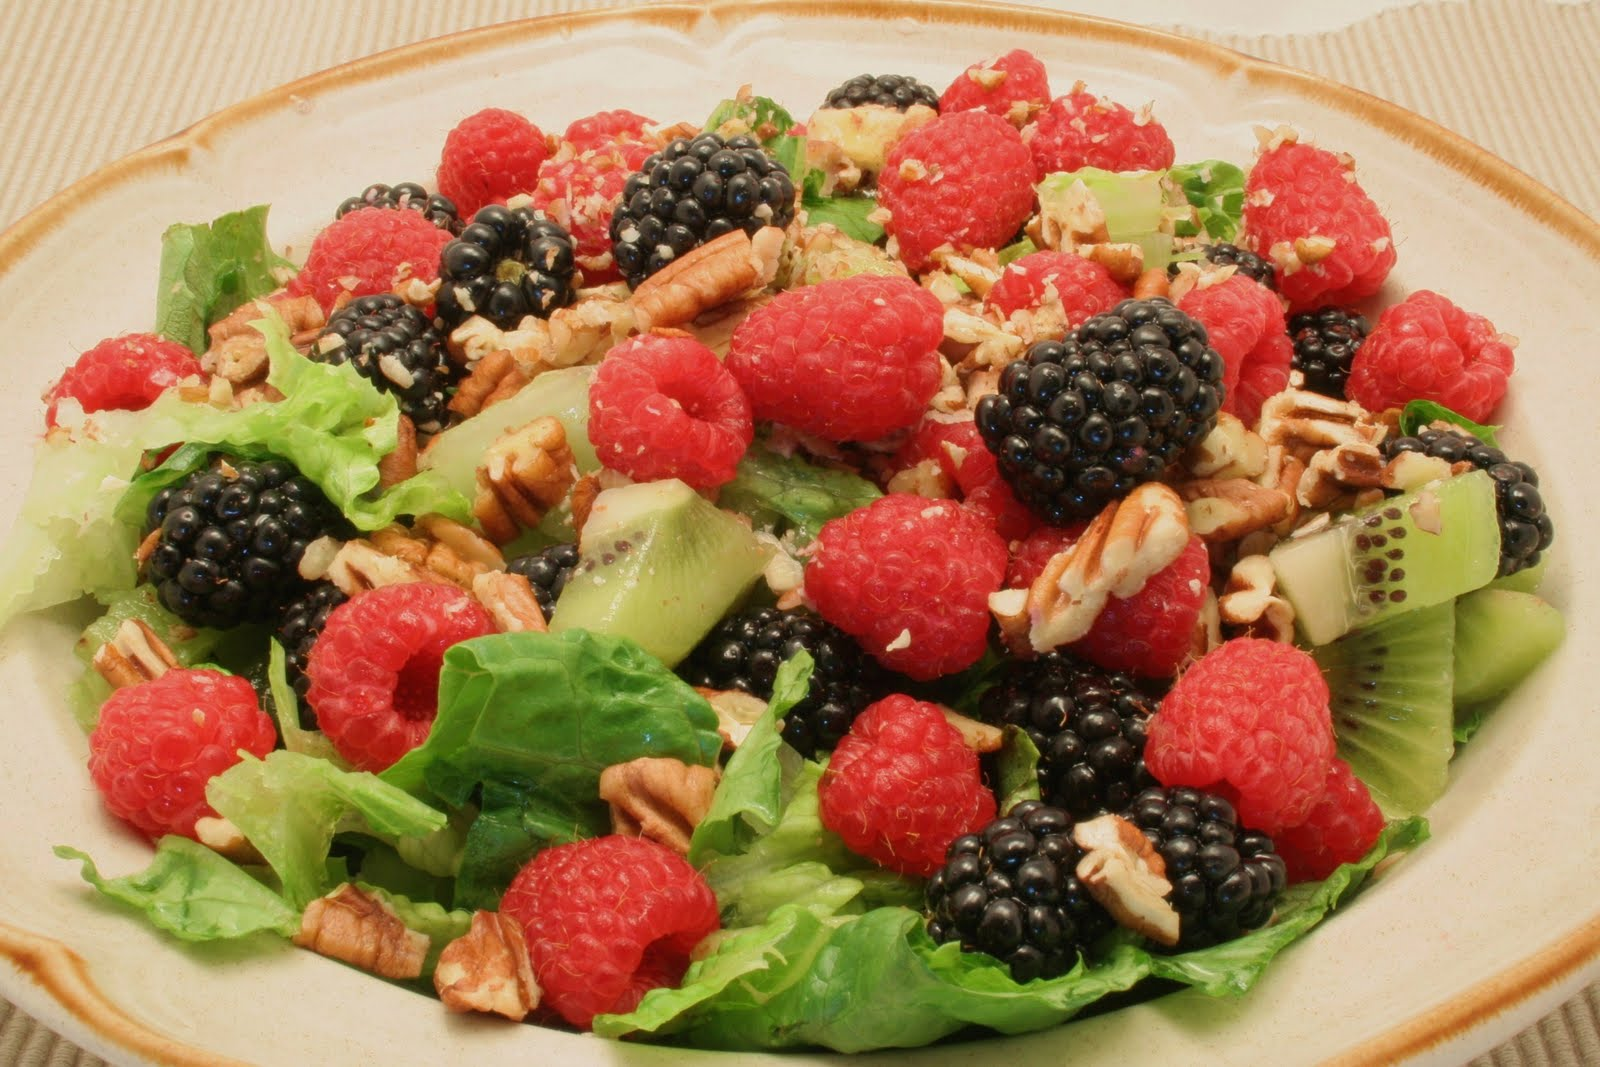 Lettuce Salad Recipes With Fruit